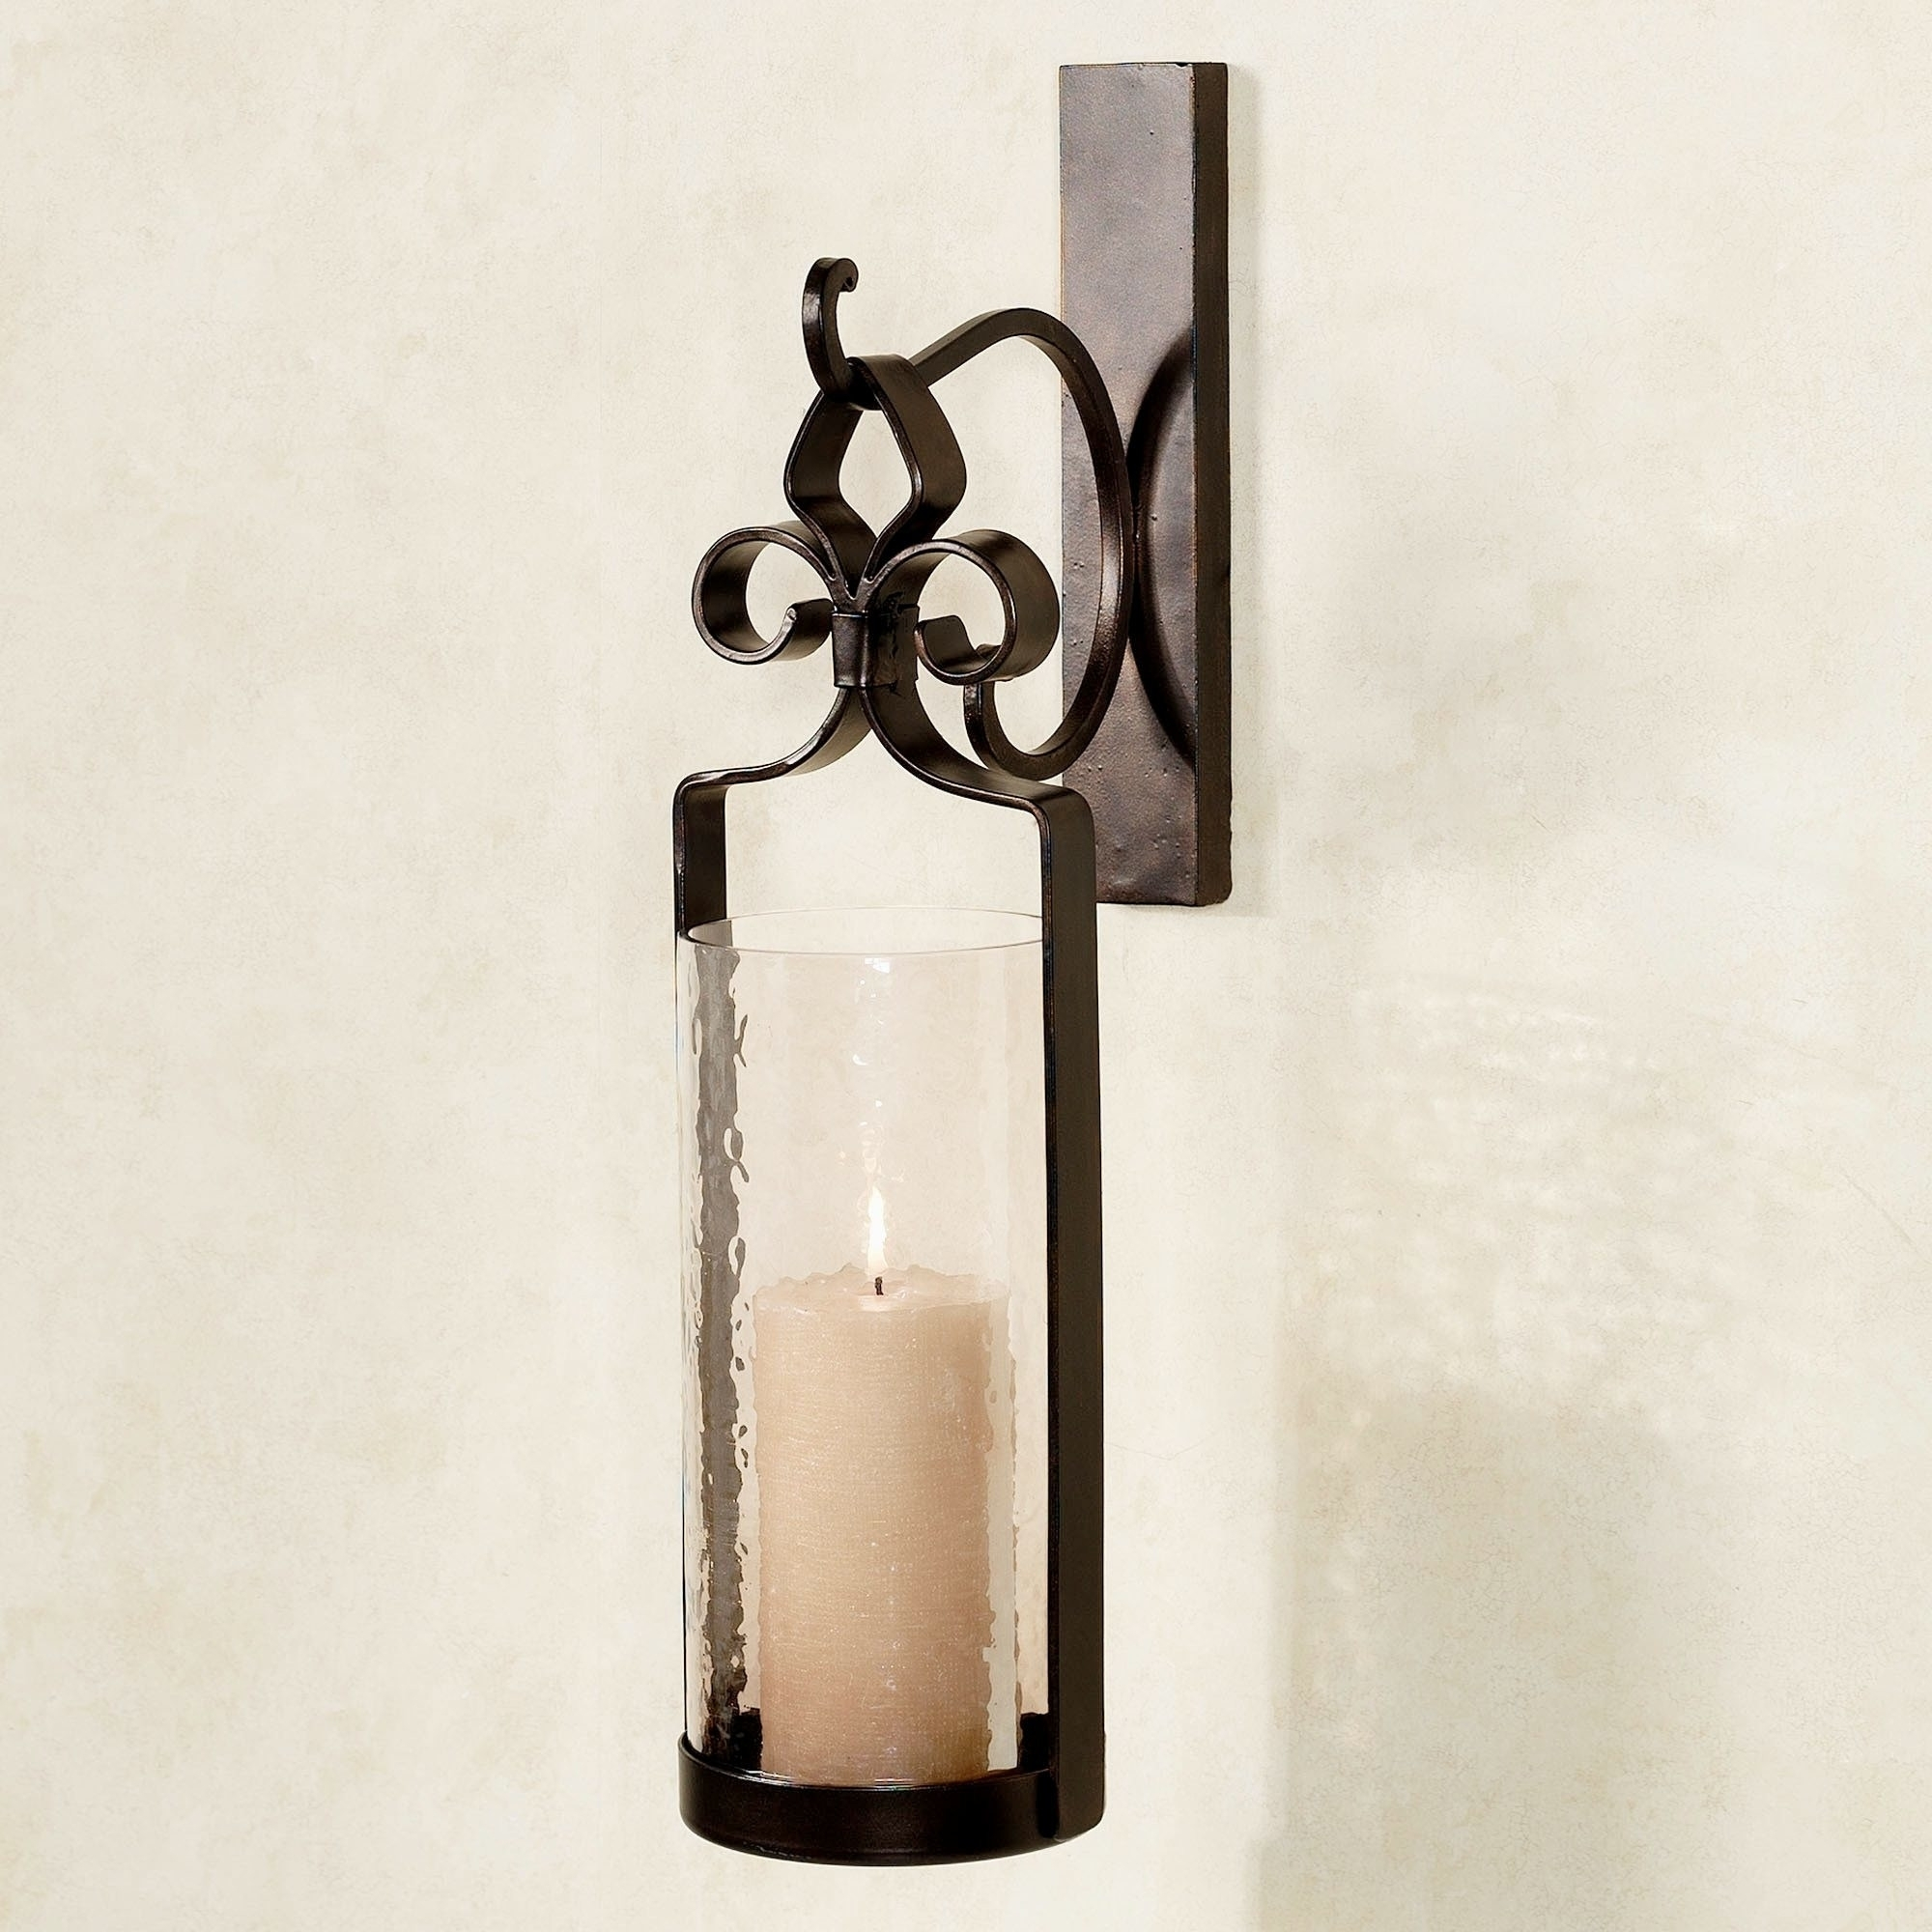 Fresh Ideas Pottery Barn Wall Candle Holders Best Home Design throughout Outdoor Lanterns At Pottery Barn (Image 3 of 20)